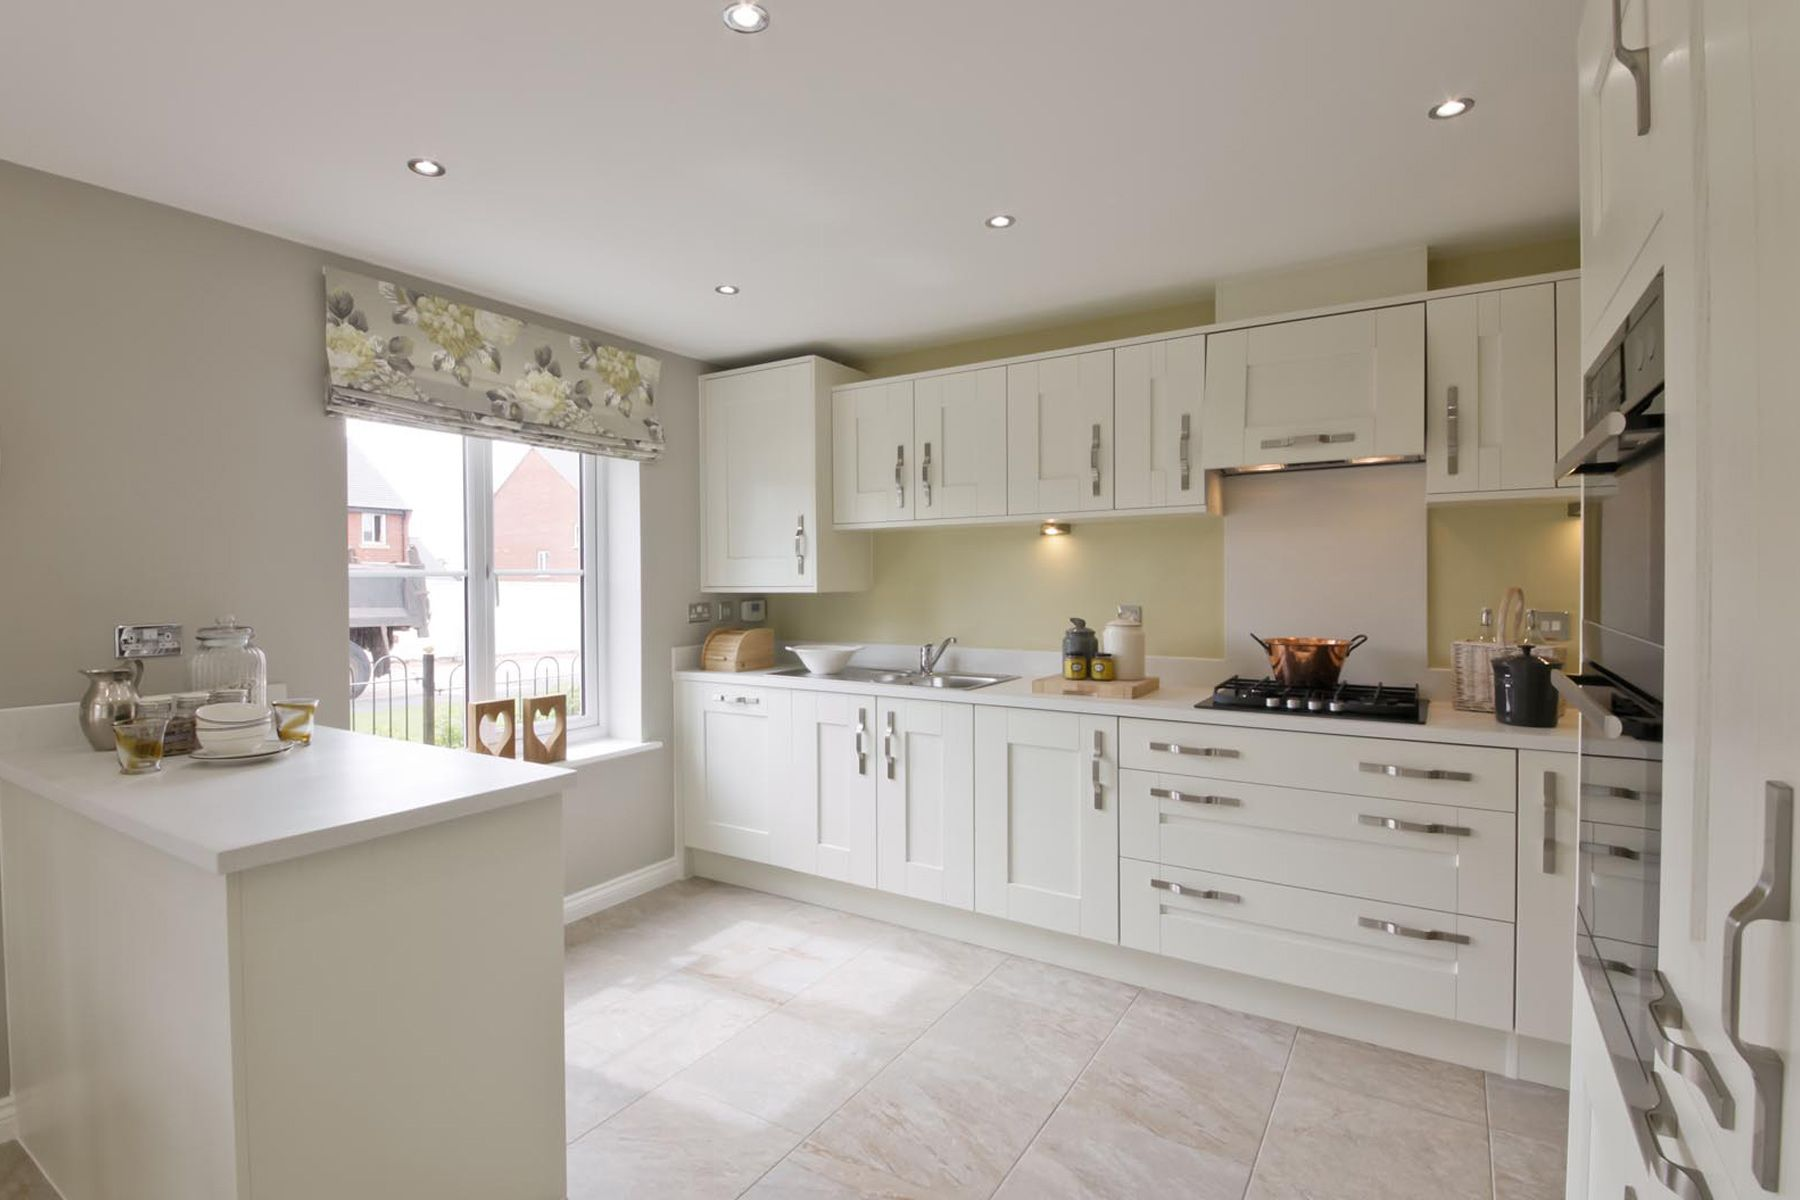 TW Exeter - Buckingham Heights - Trusdale example kitchen